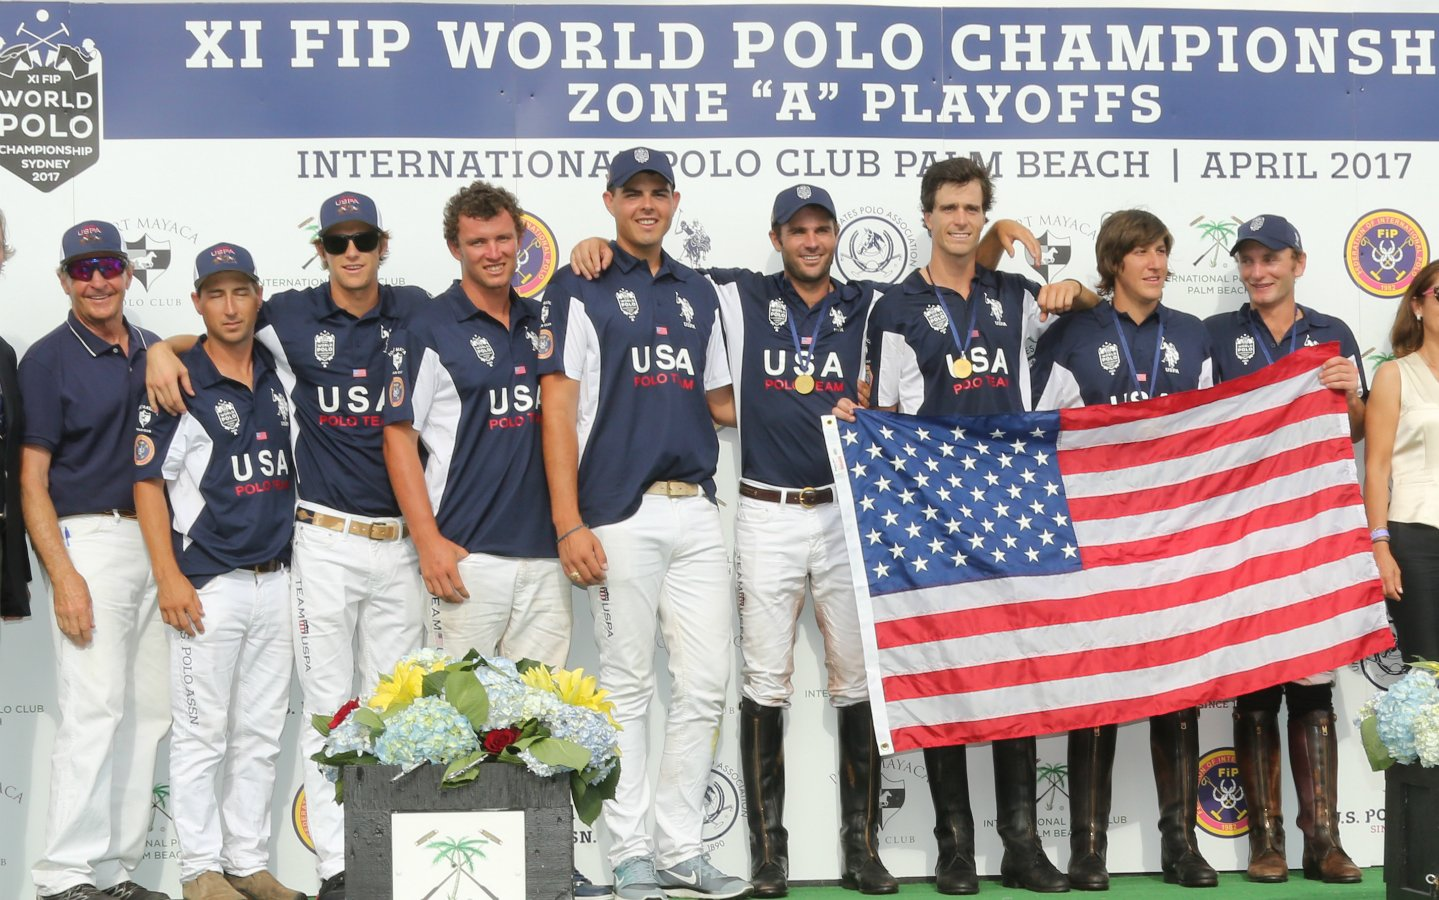 USA earns FIP World Championship tournament berth with win